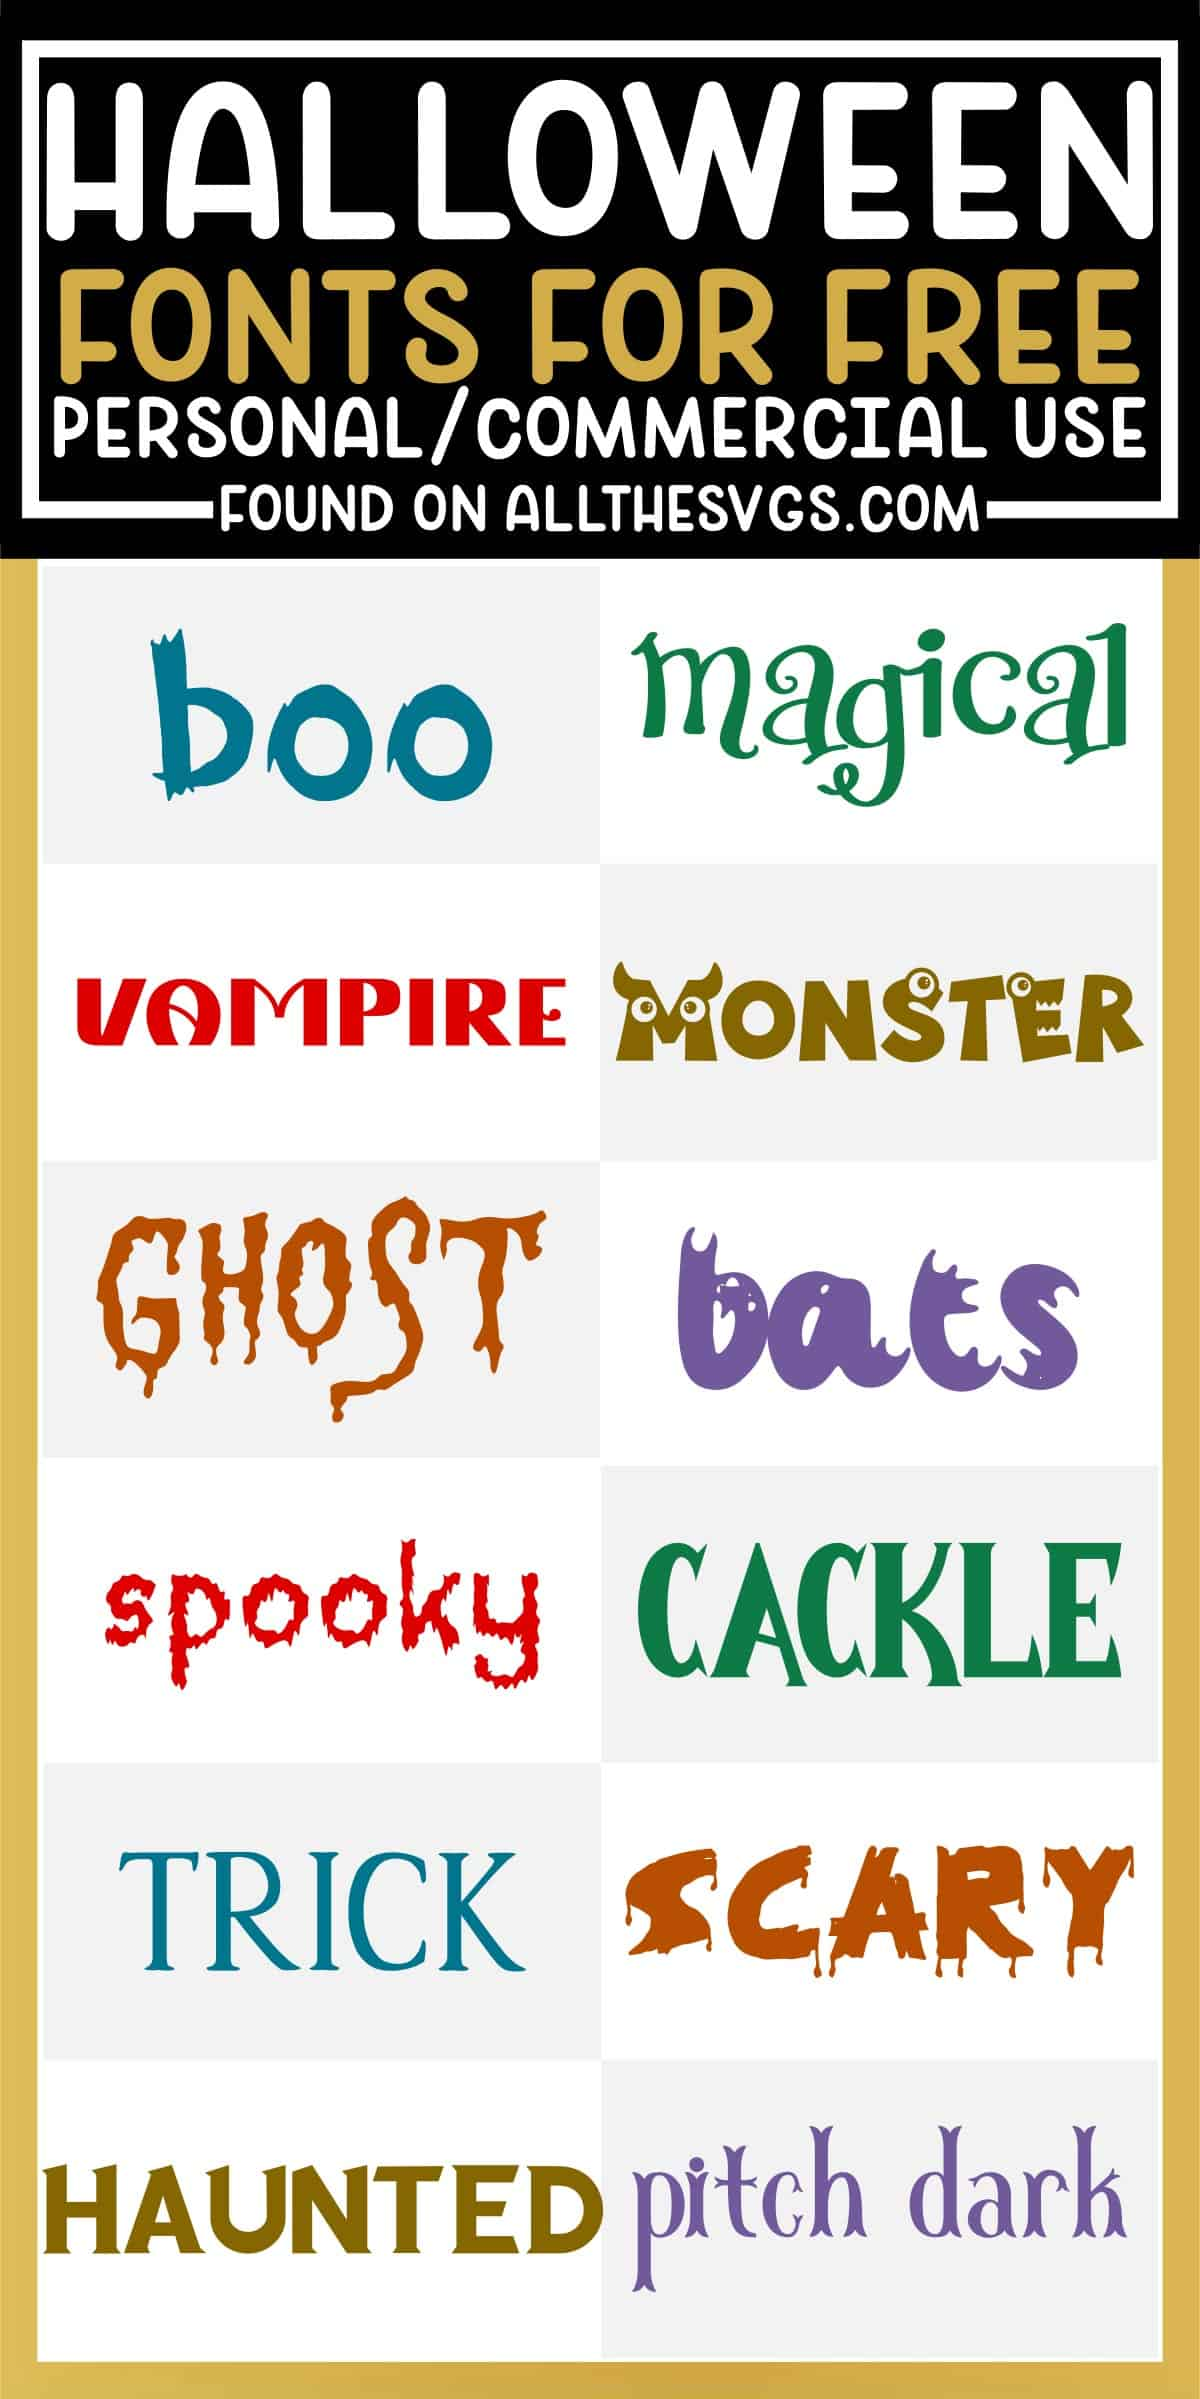 showcase of 12 best free scary and cute halloween fonts for commercial use.